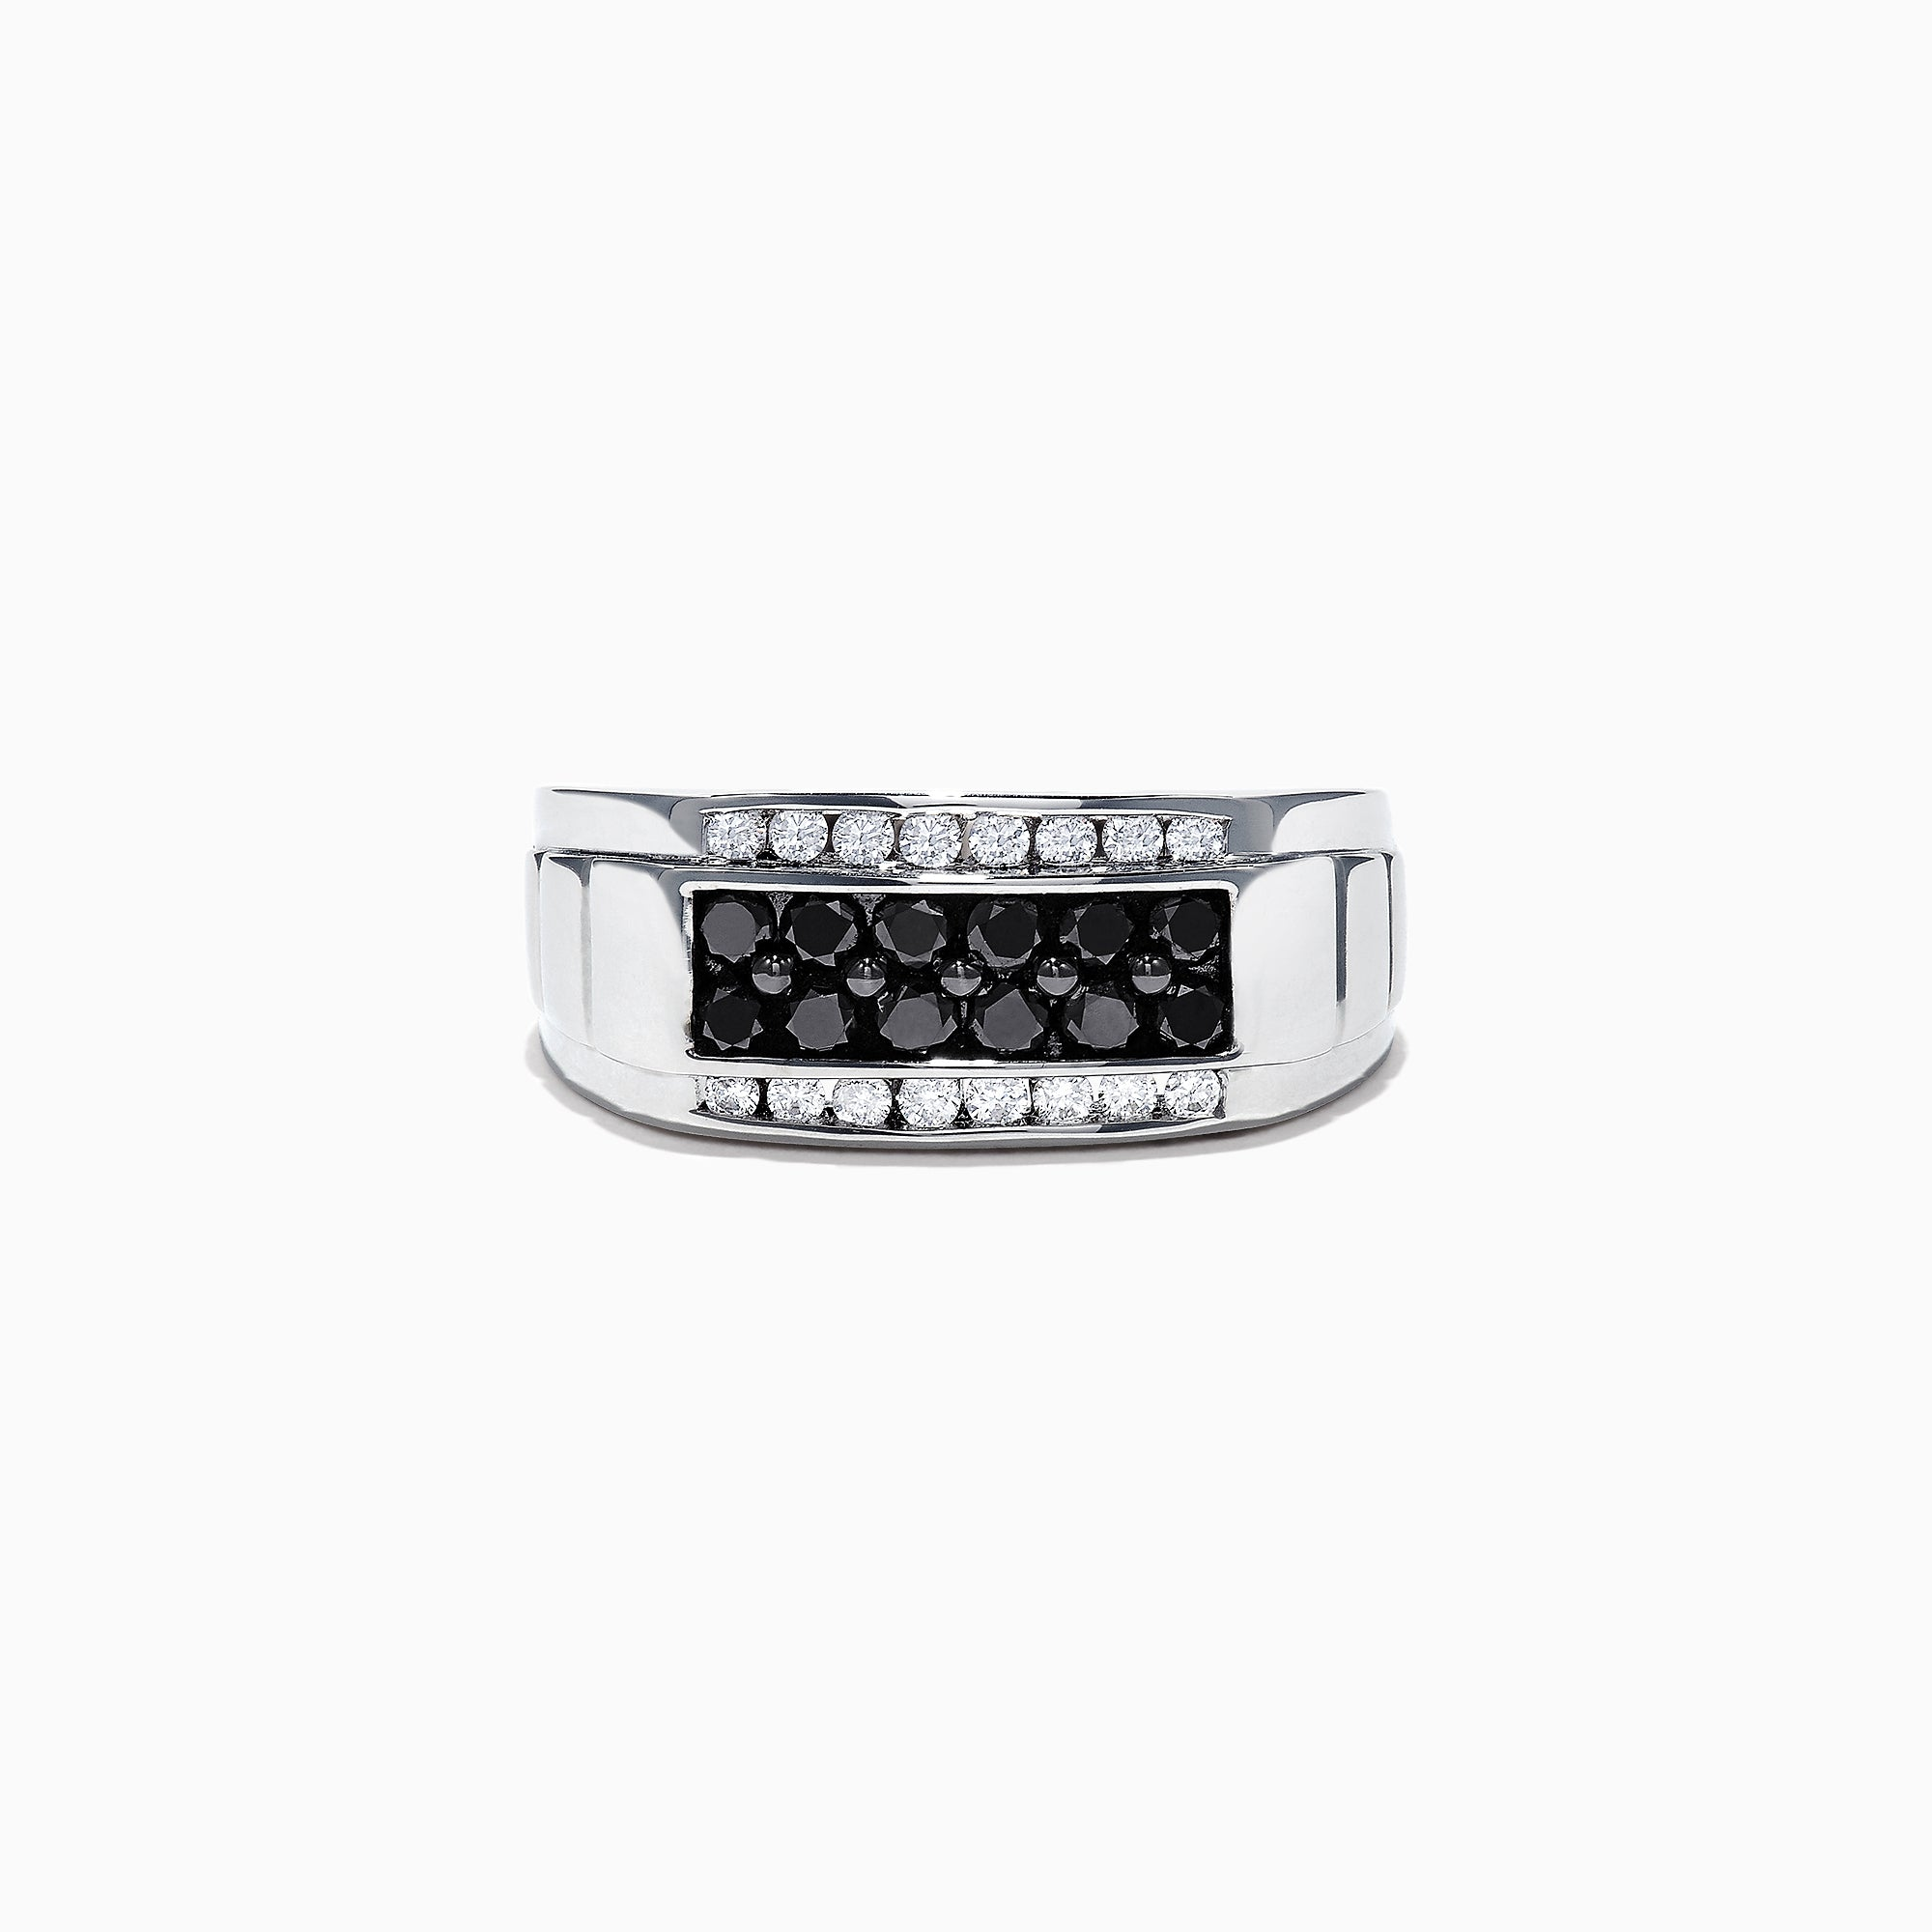 Effy Men's 14K White Gold Black and White Diamond Ring, 0.96 TCW